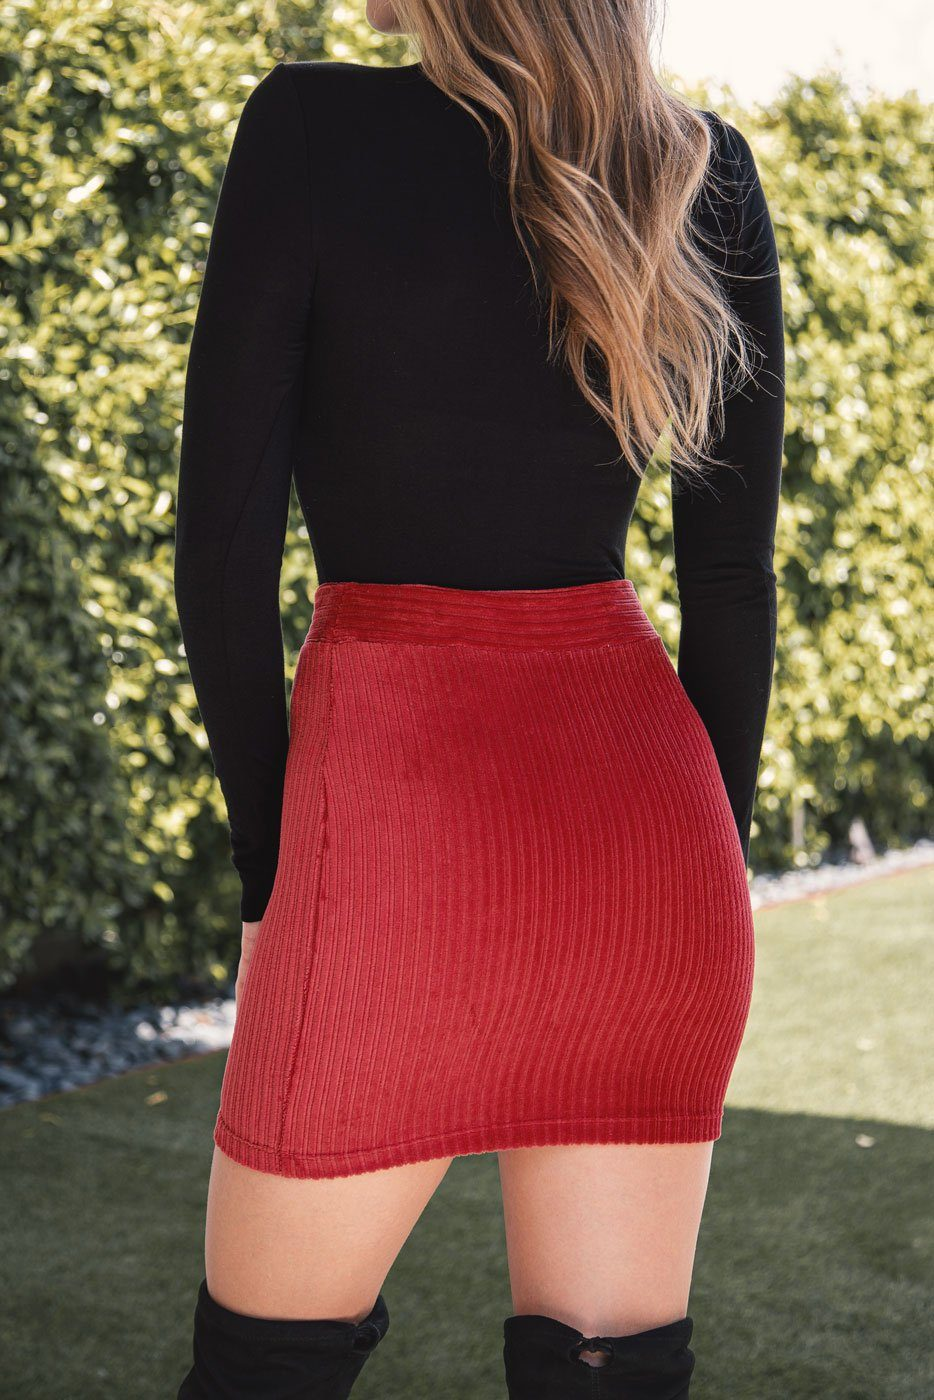 Red Mini Skirt